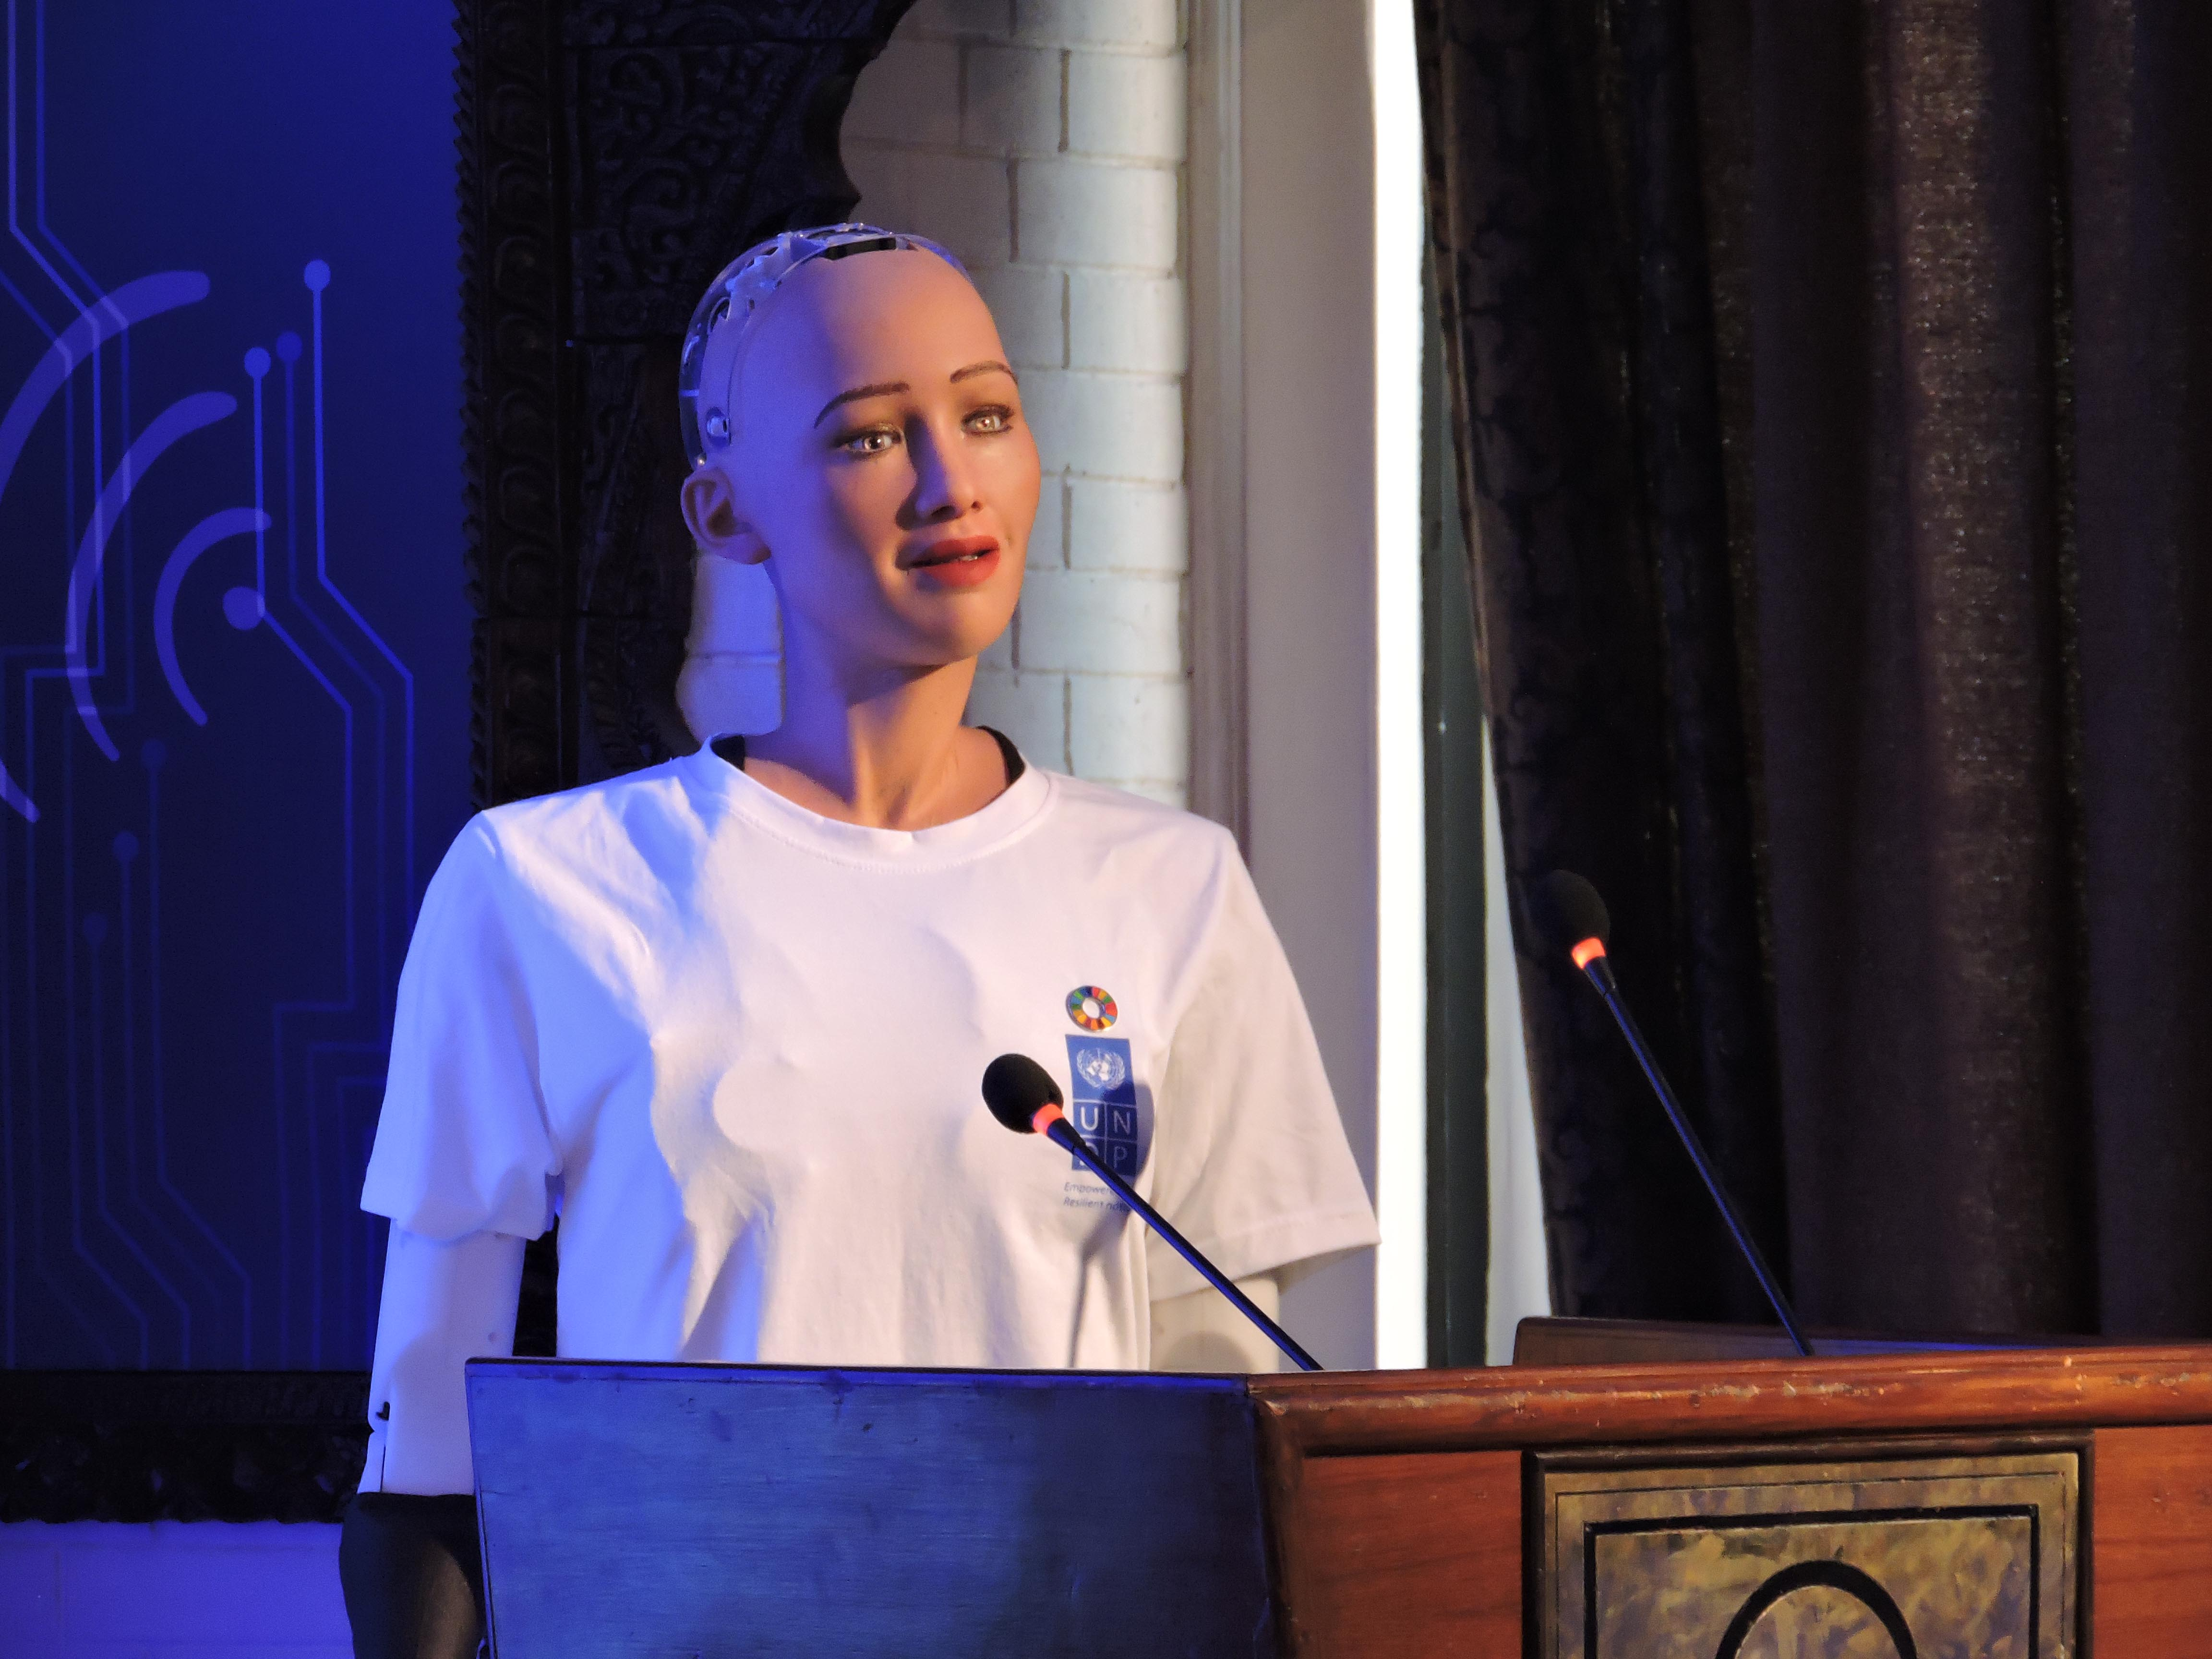 Sophia, a humanoid robot with Saudi Arabian citizenship, speaks during the United Nations innovation conference in Kathmandu, Nepal, on Wednesday, March 21, 2018. Photo: Sandeep Sen/ THT Online